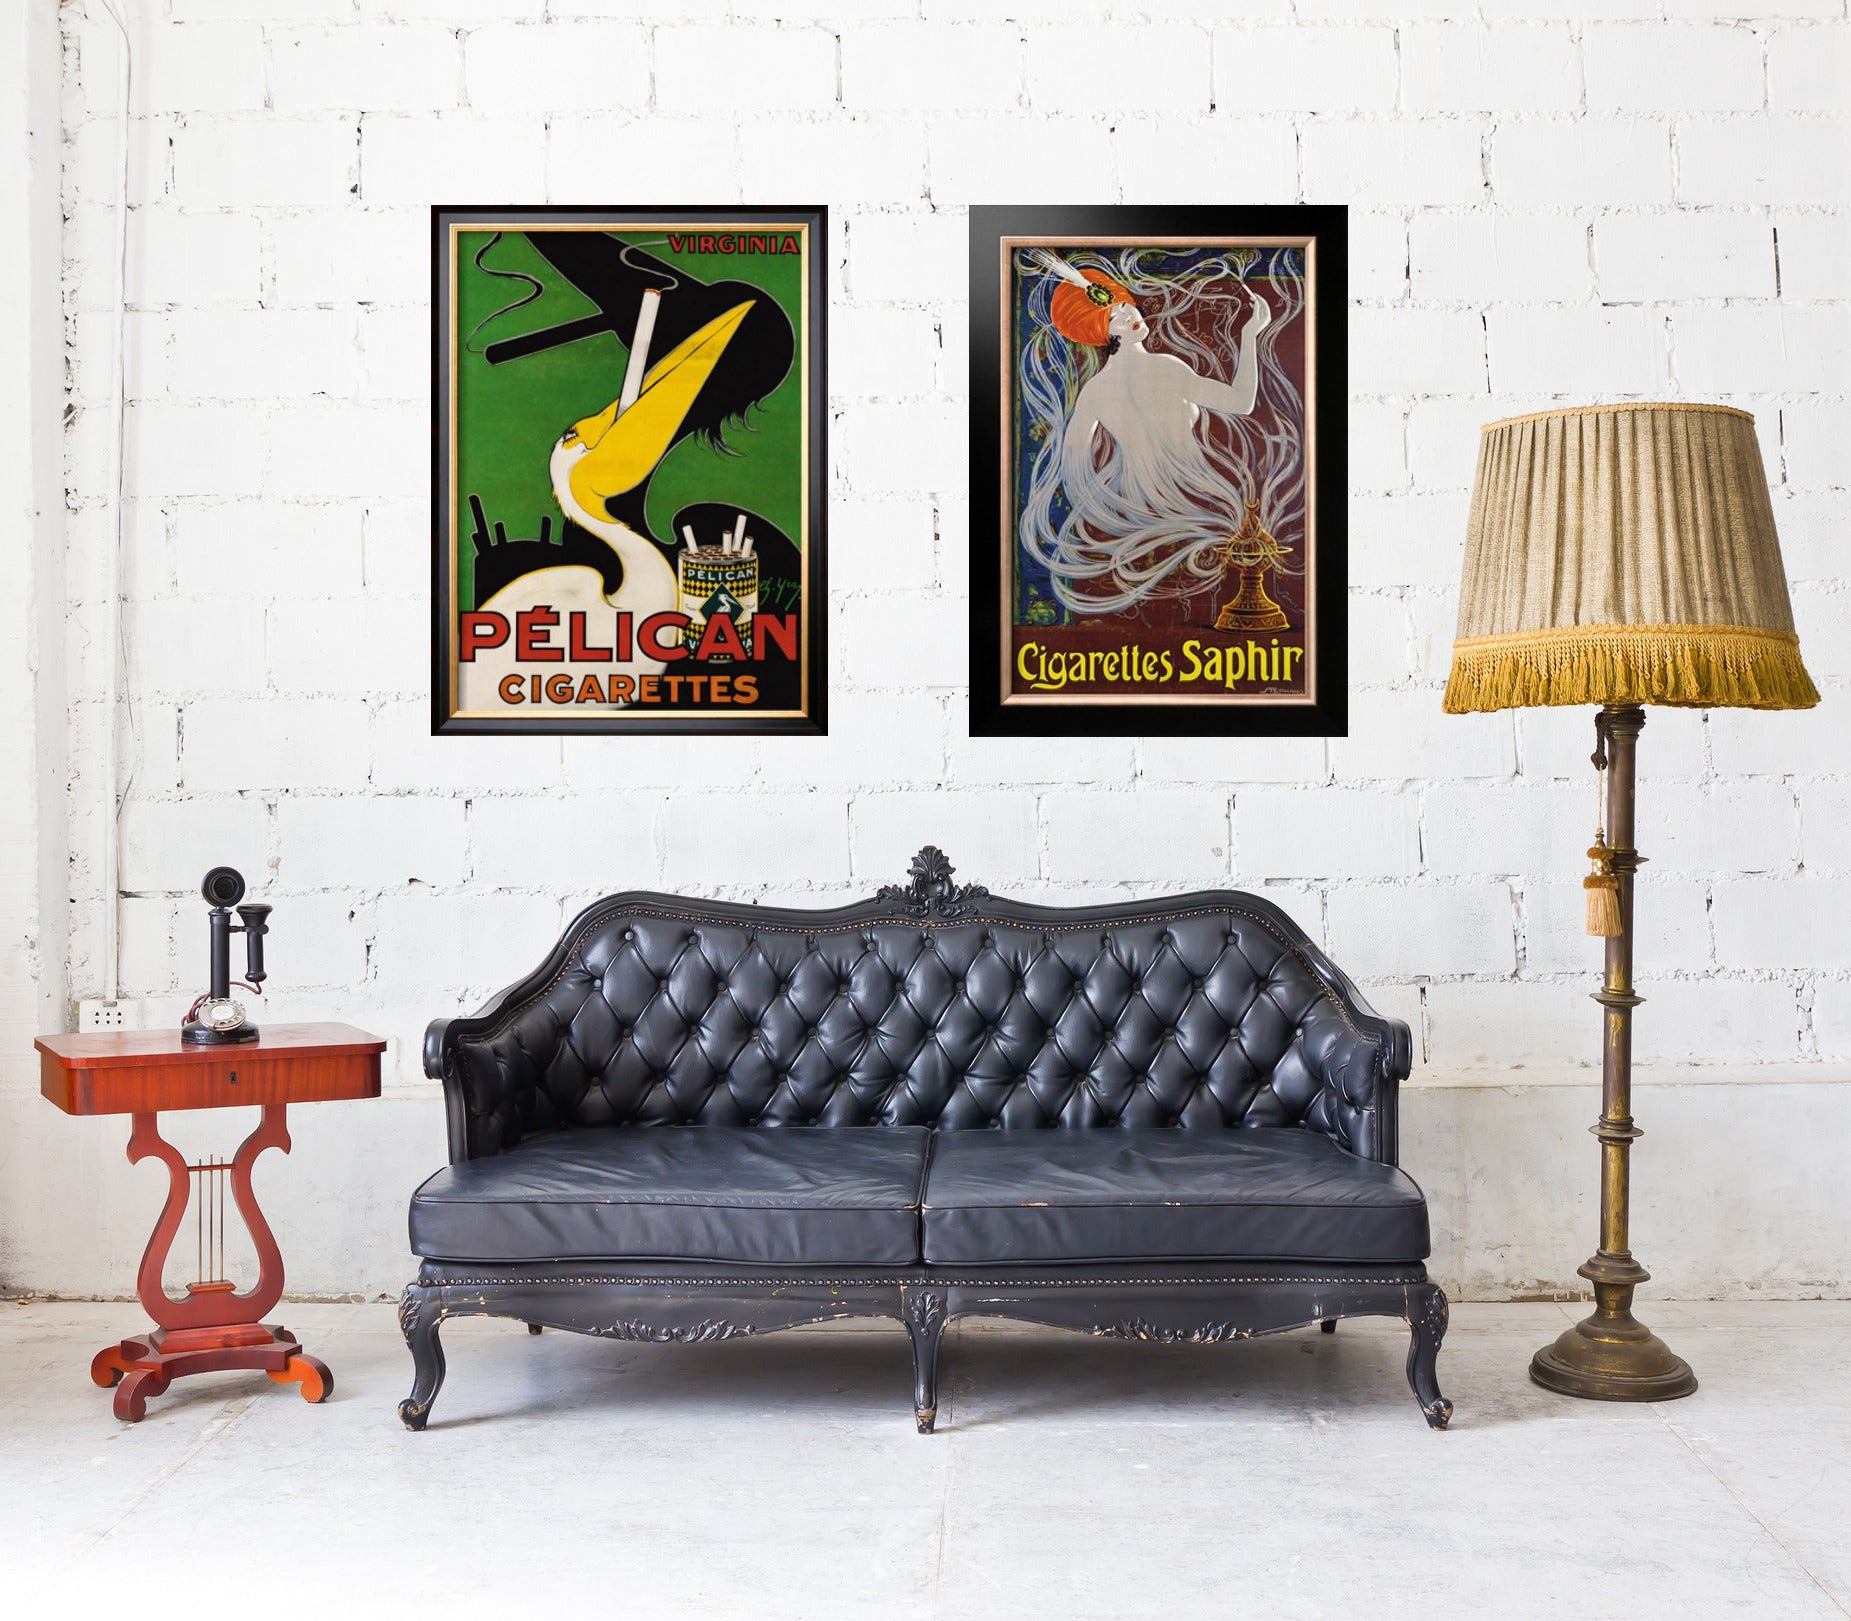 Man cave ideas decorate your bachelor pad with original vintage posters and prints